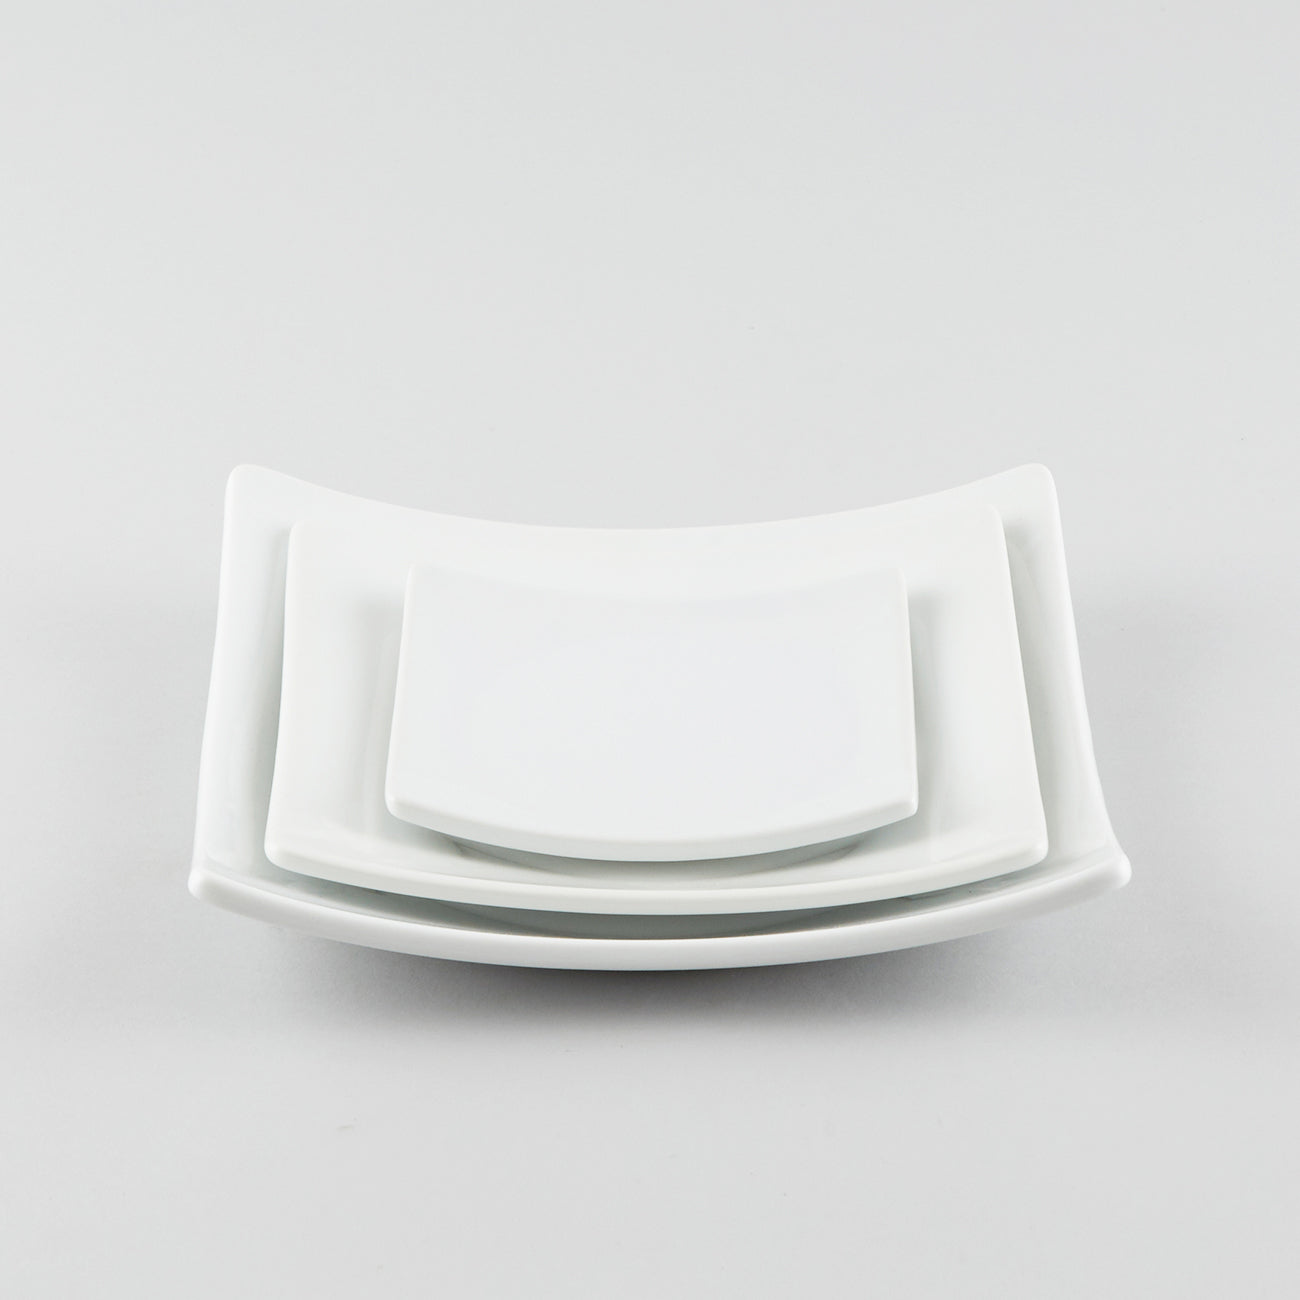 Full-Moon Square Plate with Raised Corners - White (L)